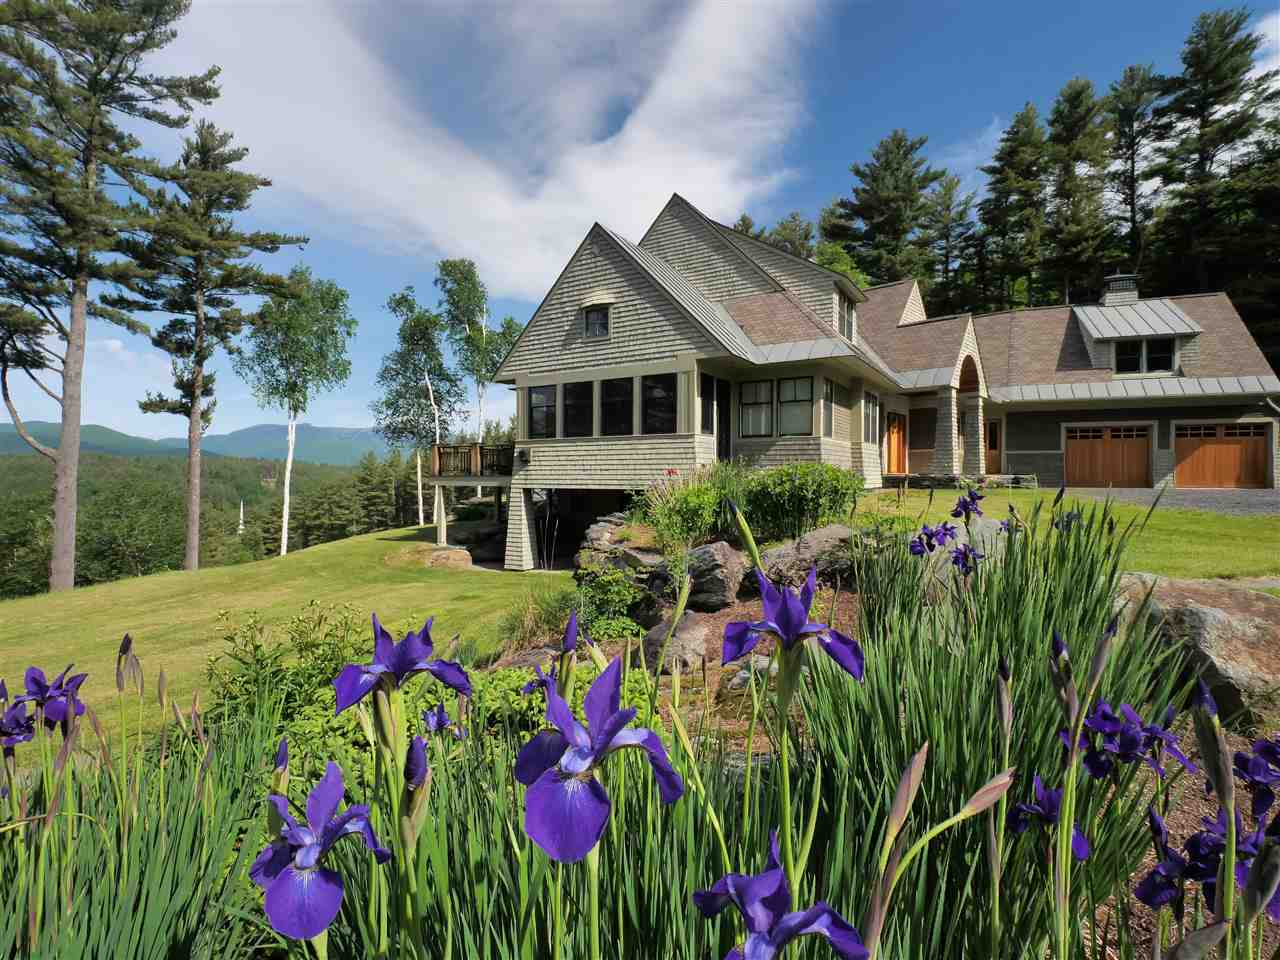 201 Taber Hill Road, Stowe, VT 05672